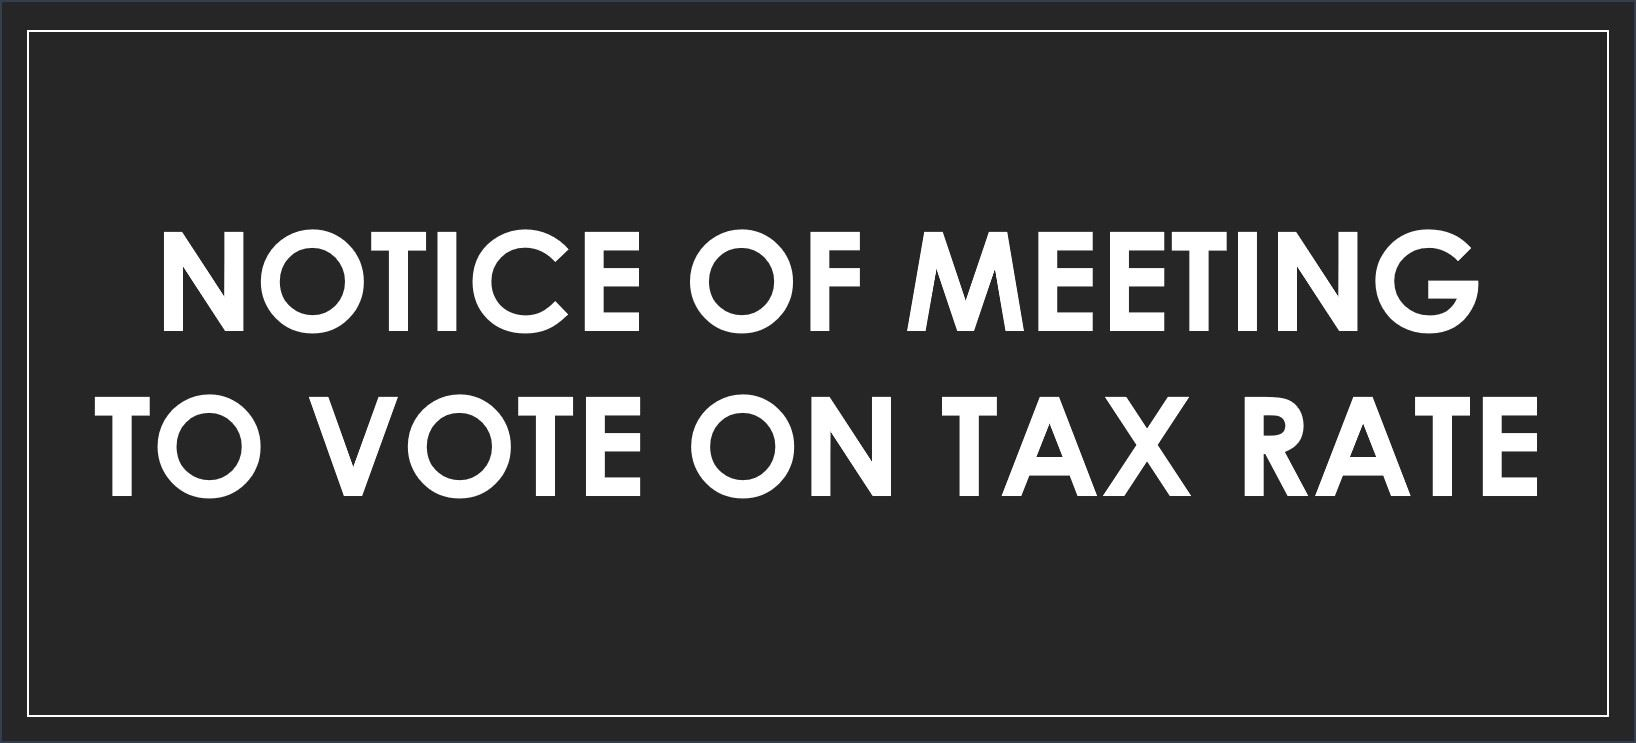 Public Notice Tax Rate